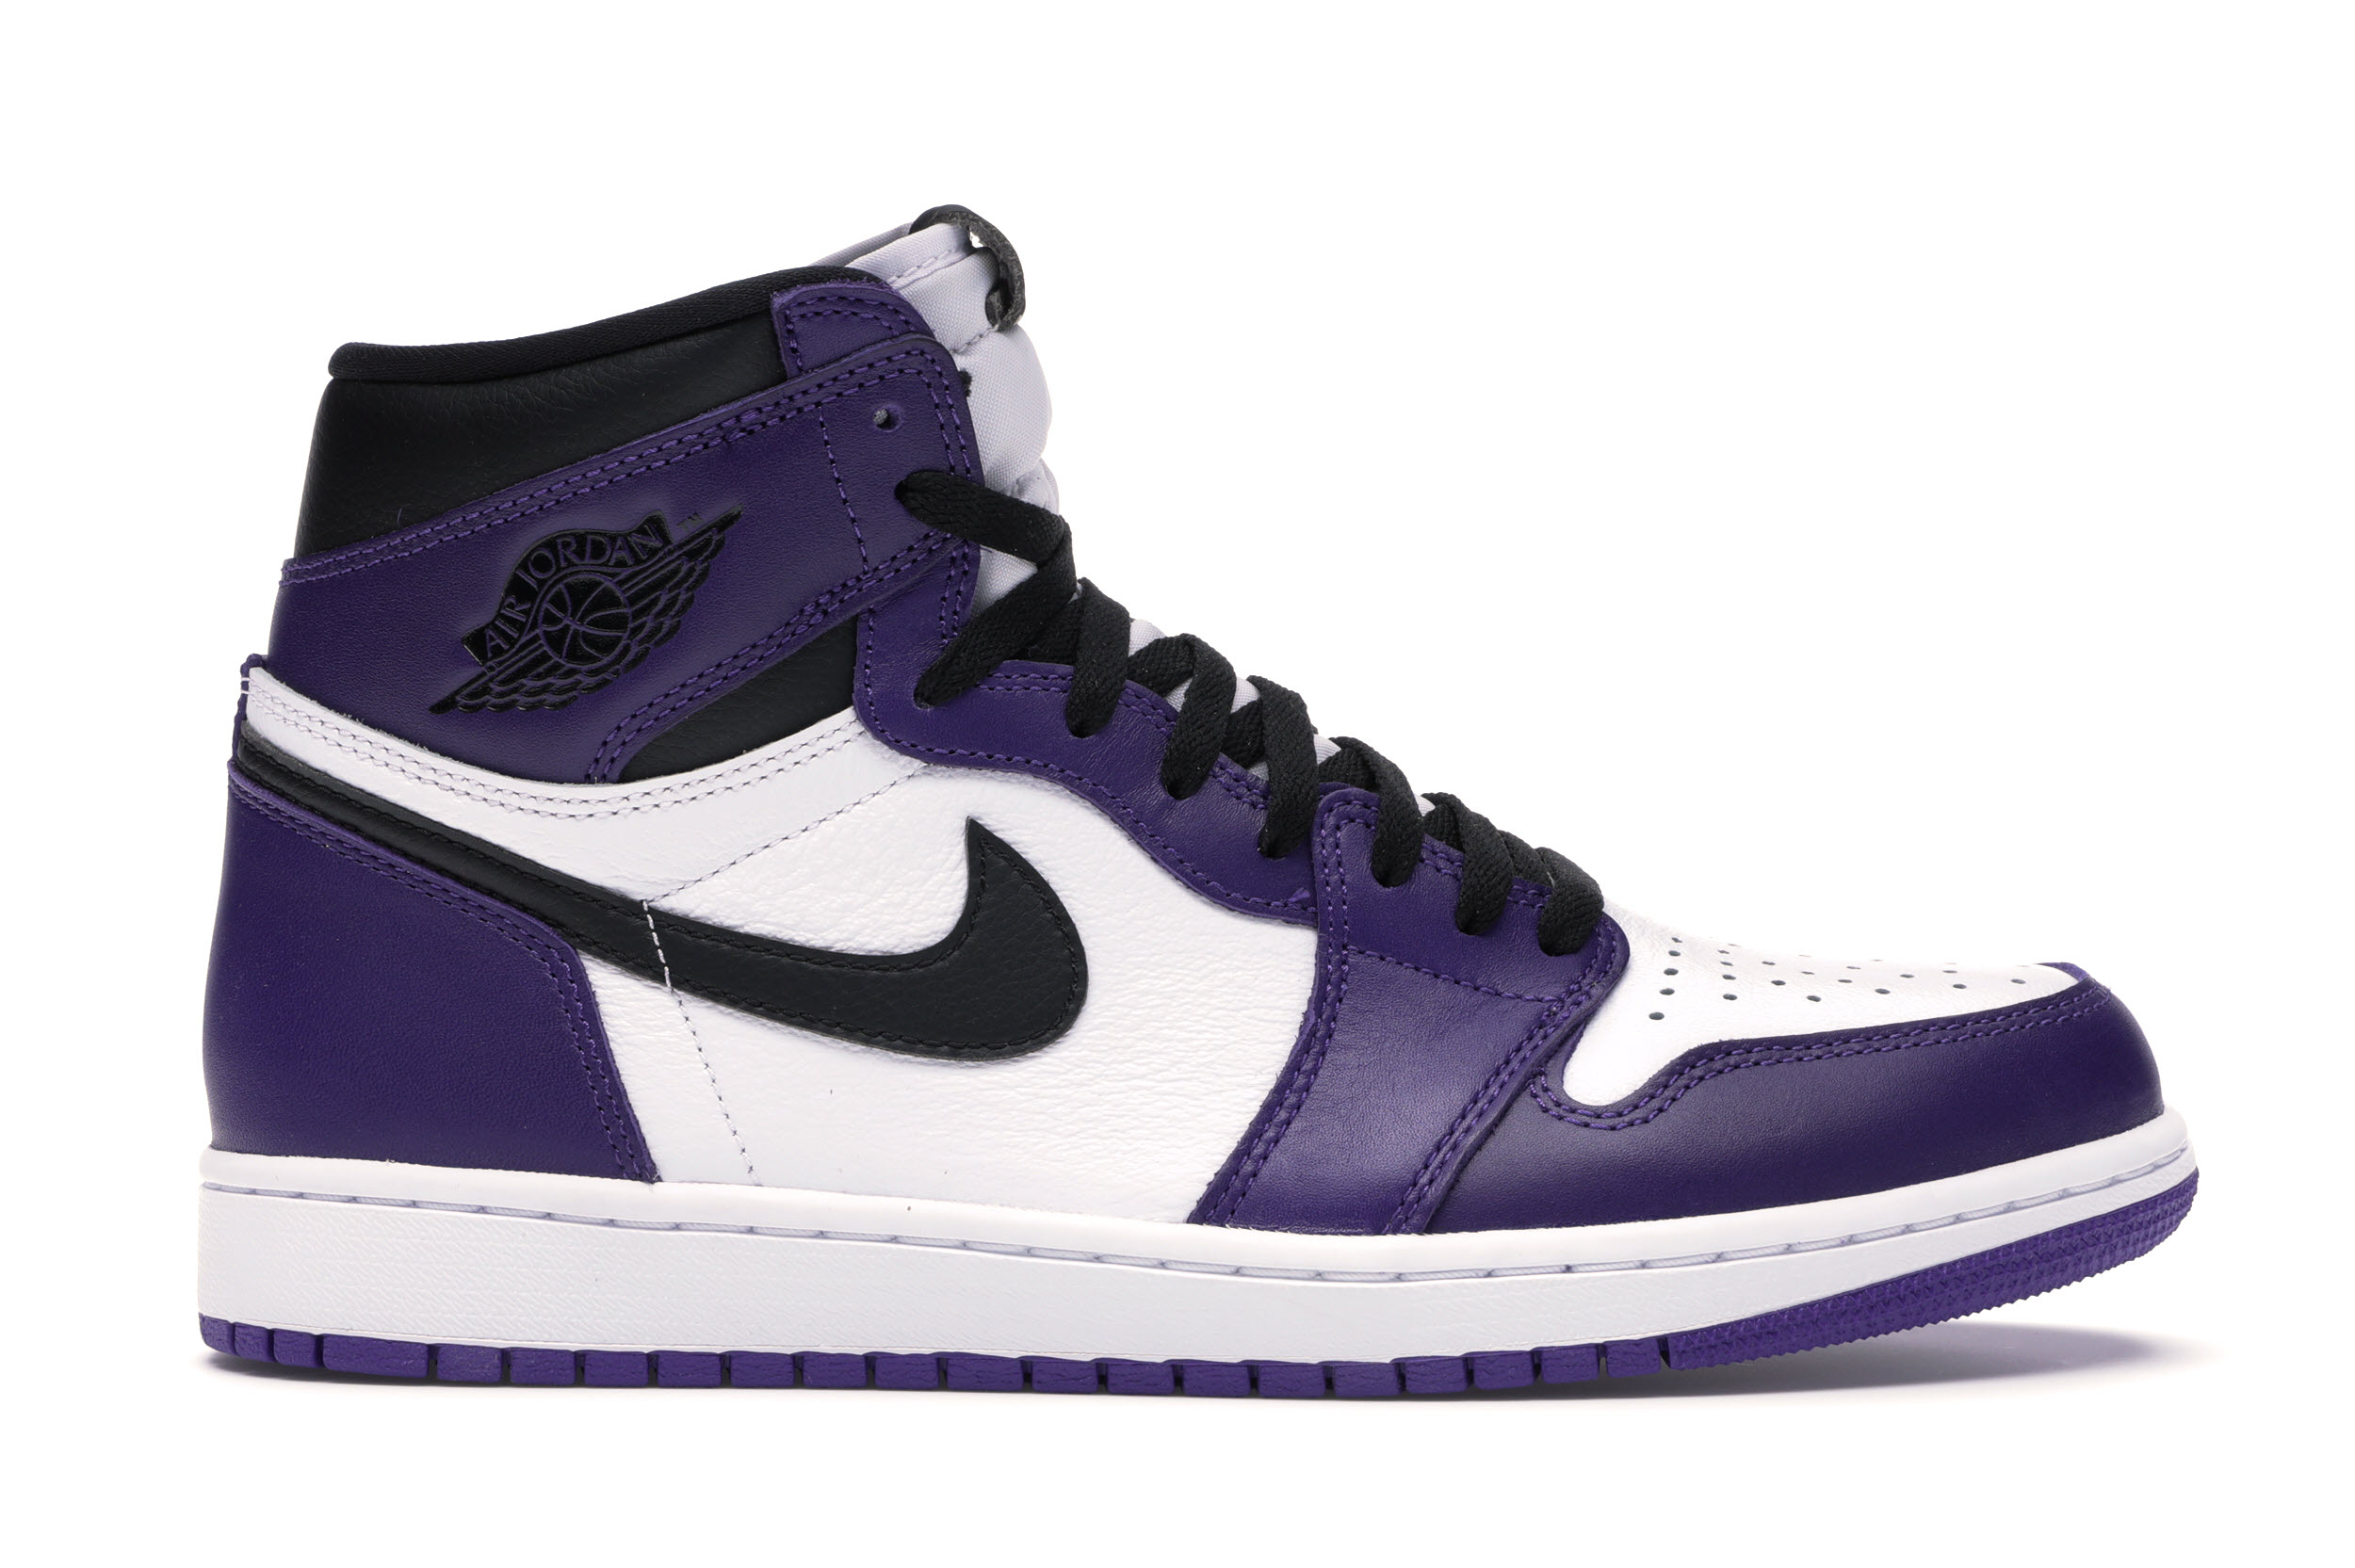 air jordan 1 court purple 2020 release